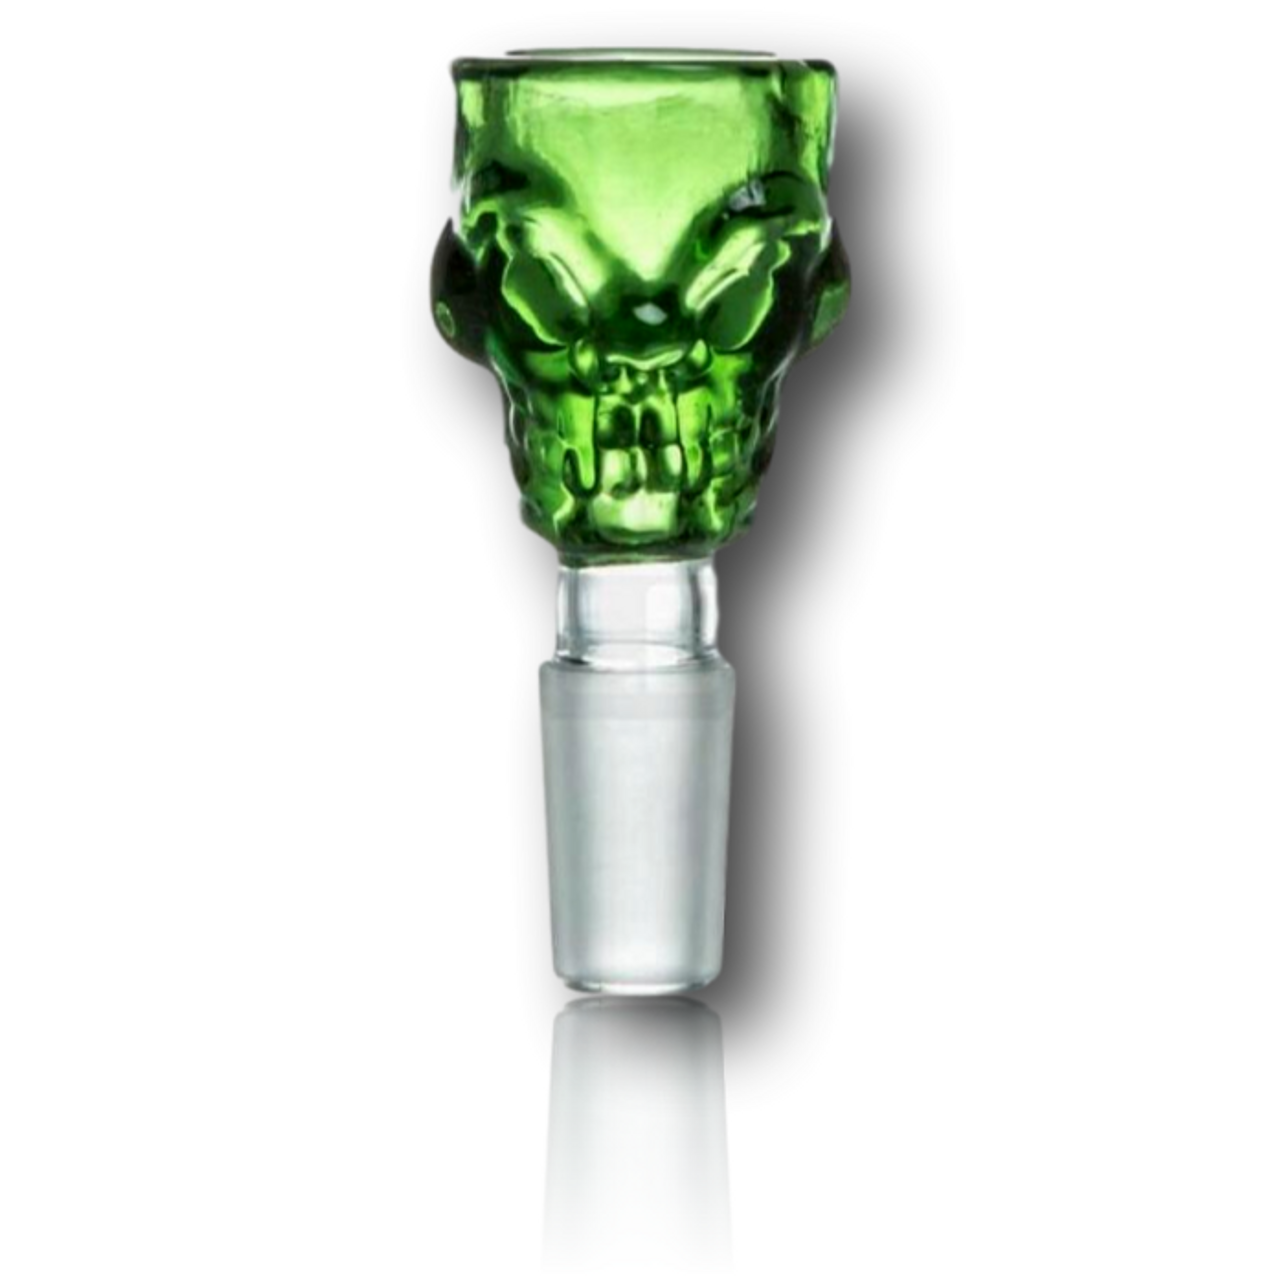 14MM REPLACEMENT BOWL - SKULL